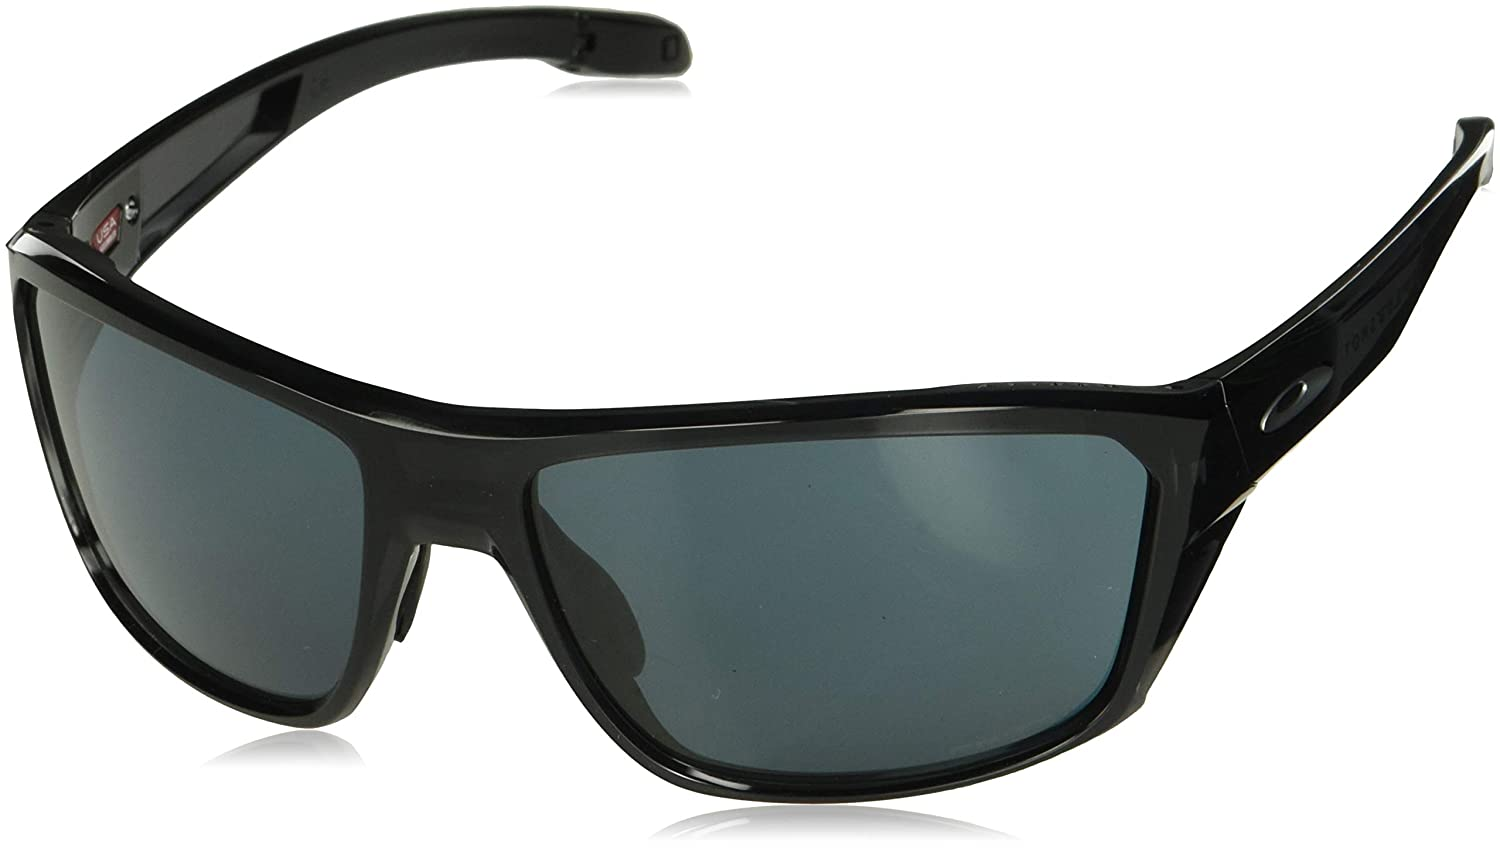 8b904c442b Amazon.com  Oakley Men s Split Shot Sunglasses